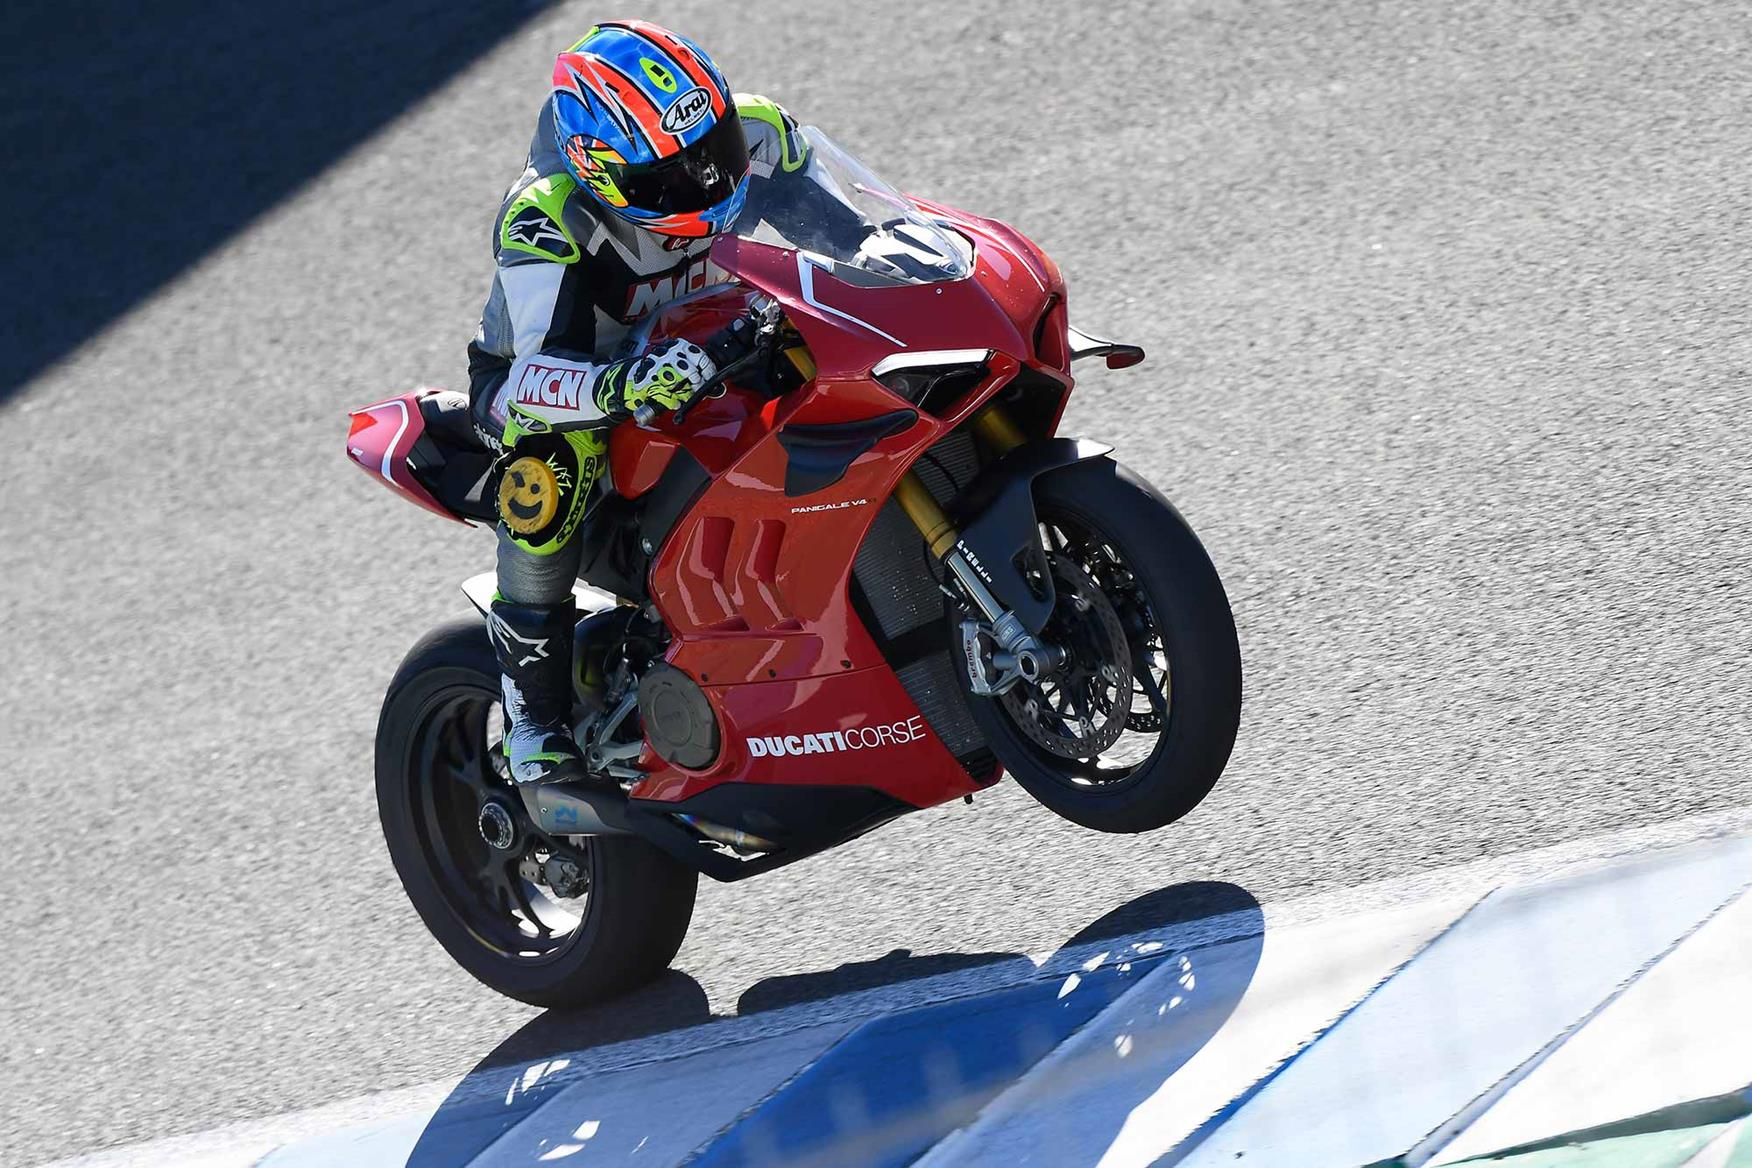 MCN's Neeves struggles to keep the front end down